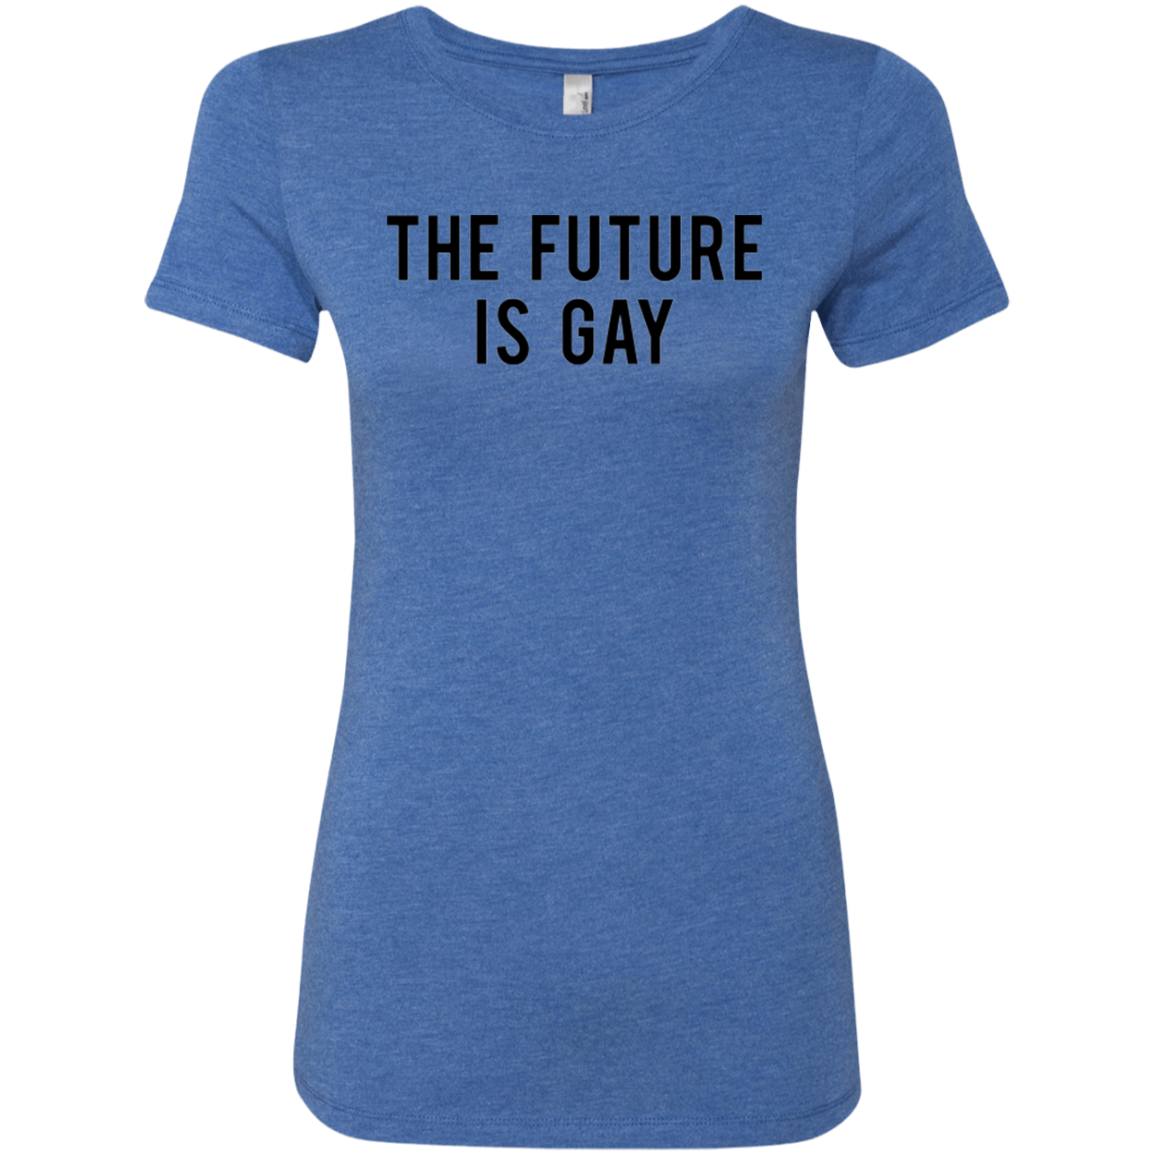 The Future is Gay Women's Classic Tee